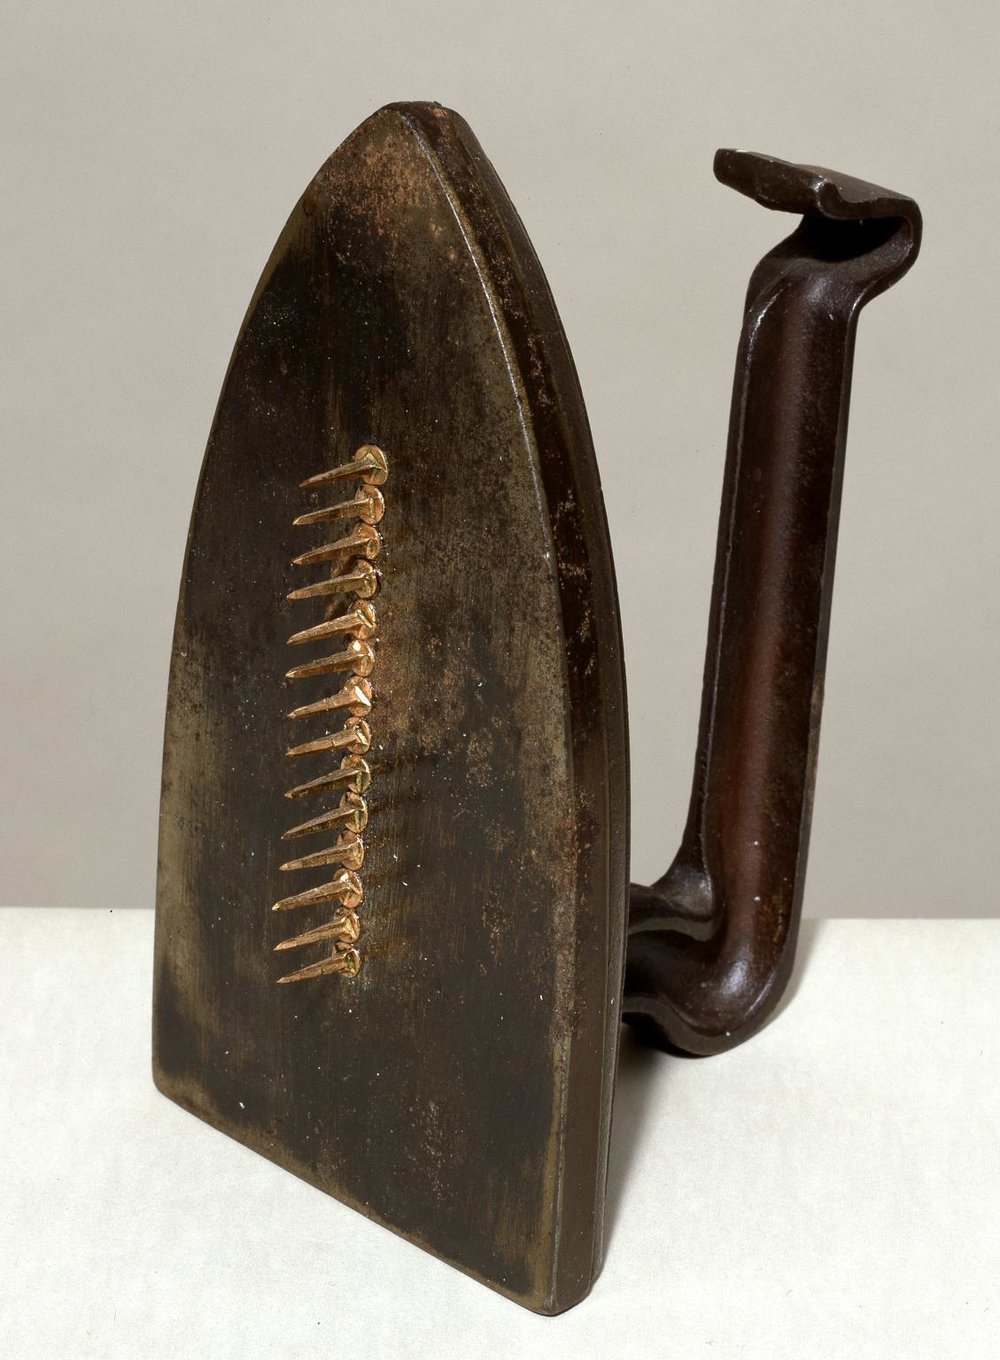 Courtesy of The Tate Museum-http://www.tate.org.uk/art/artworks/man-ray-cadeau-t07883